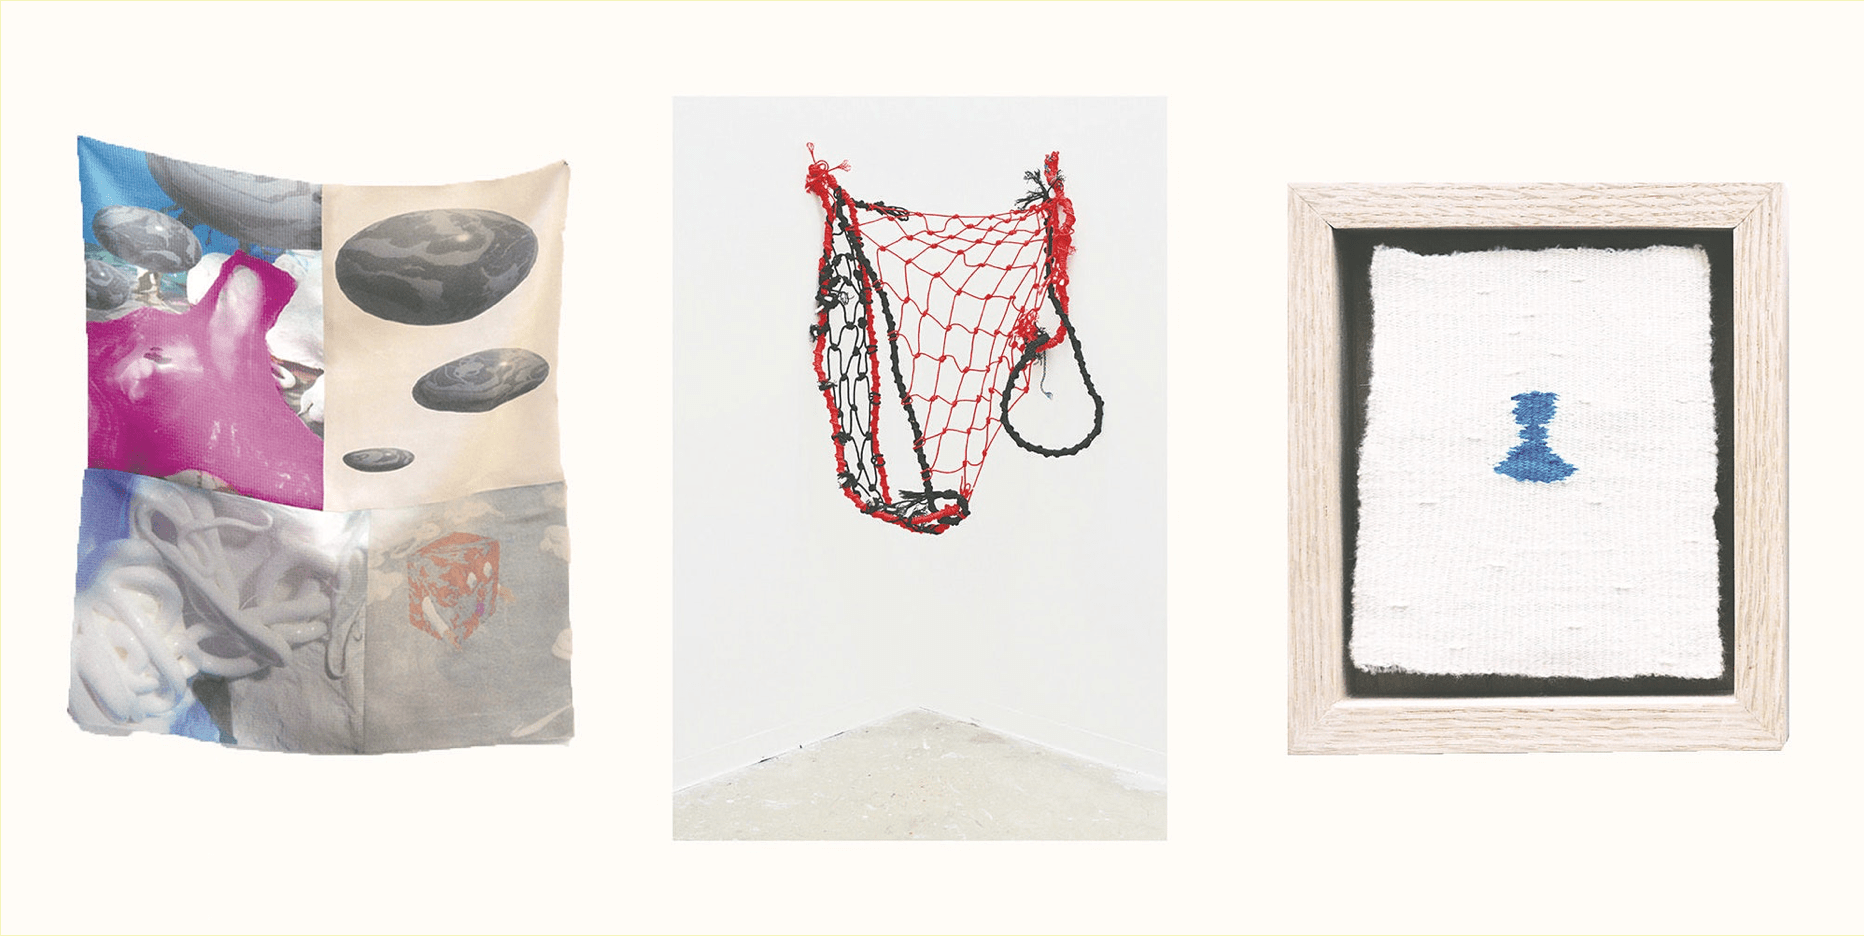 Three images—one tapestry depicting multiple smoothed river rocks, and a liquidy, tentacle like goop; one tangled net, hanging against a white wall; one small, chess-piece-like blue object, knit against a white fabric.